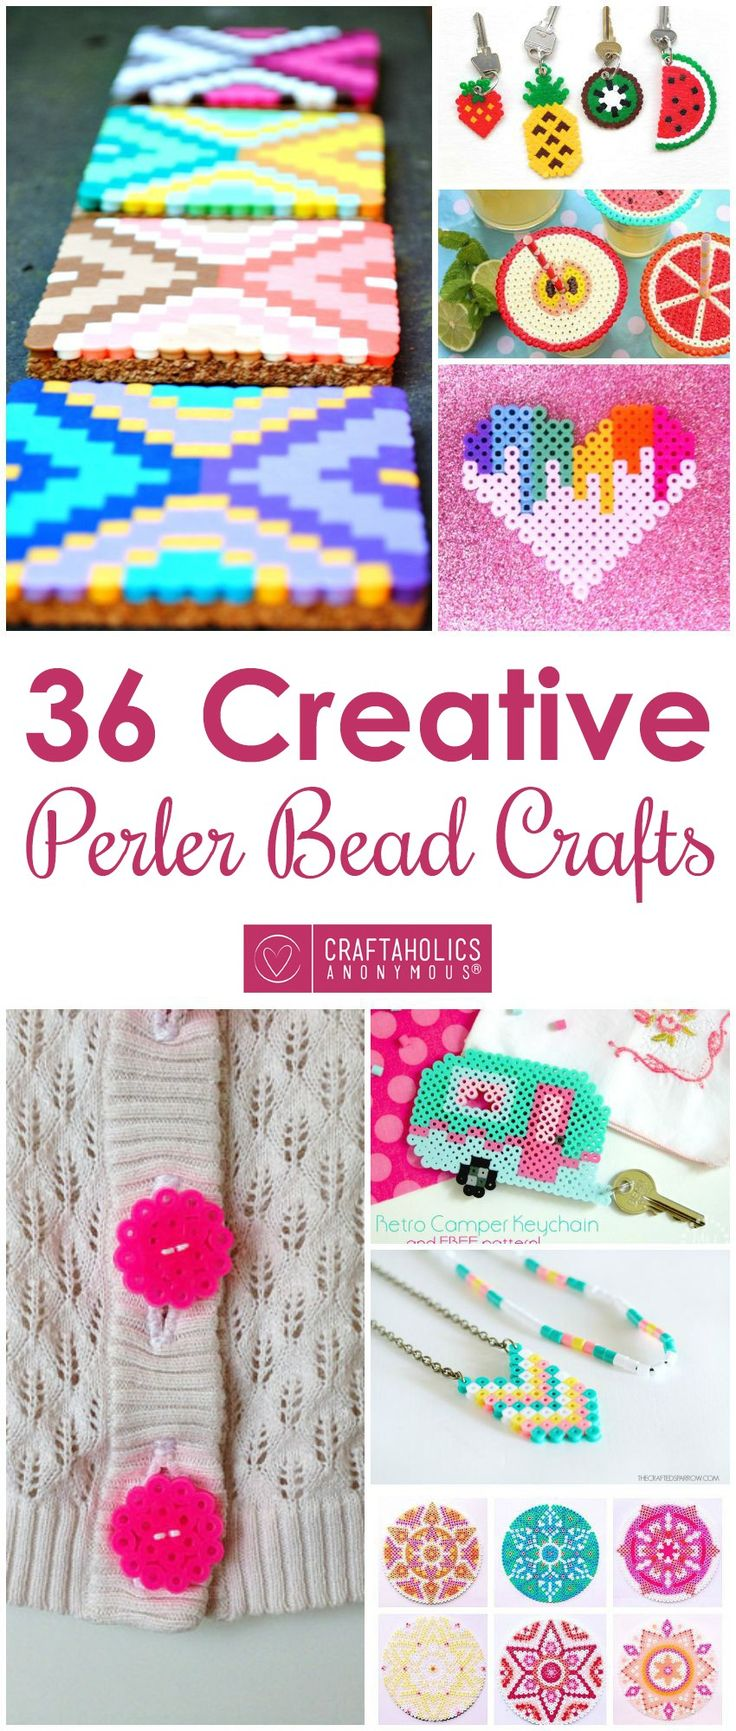 Micro beads for crafting - Download